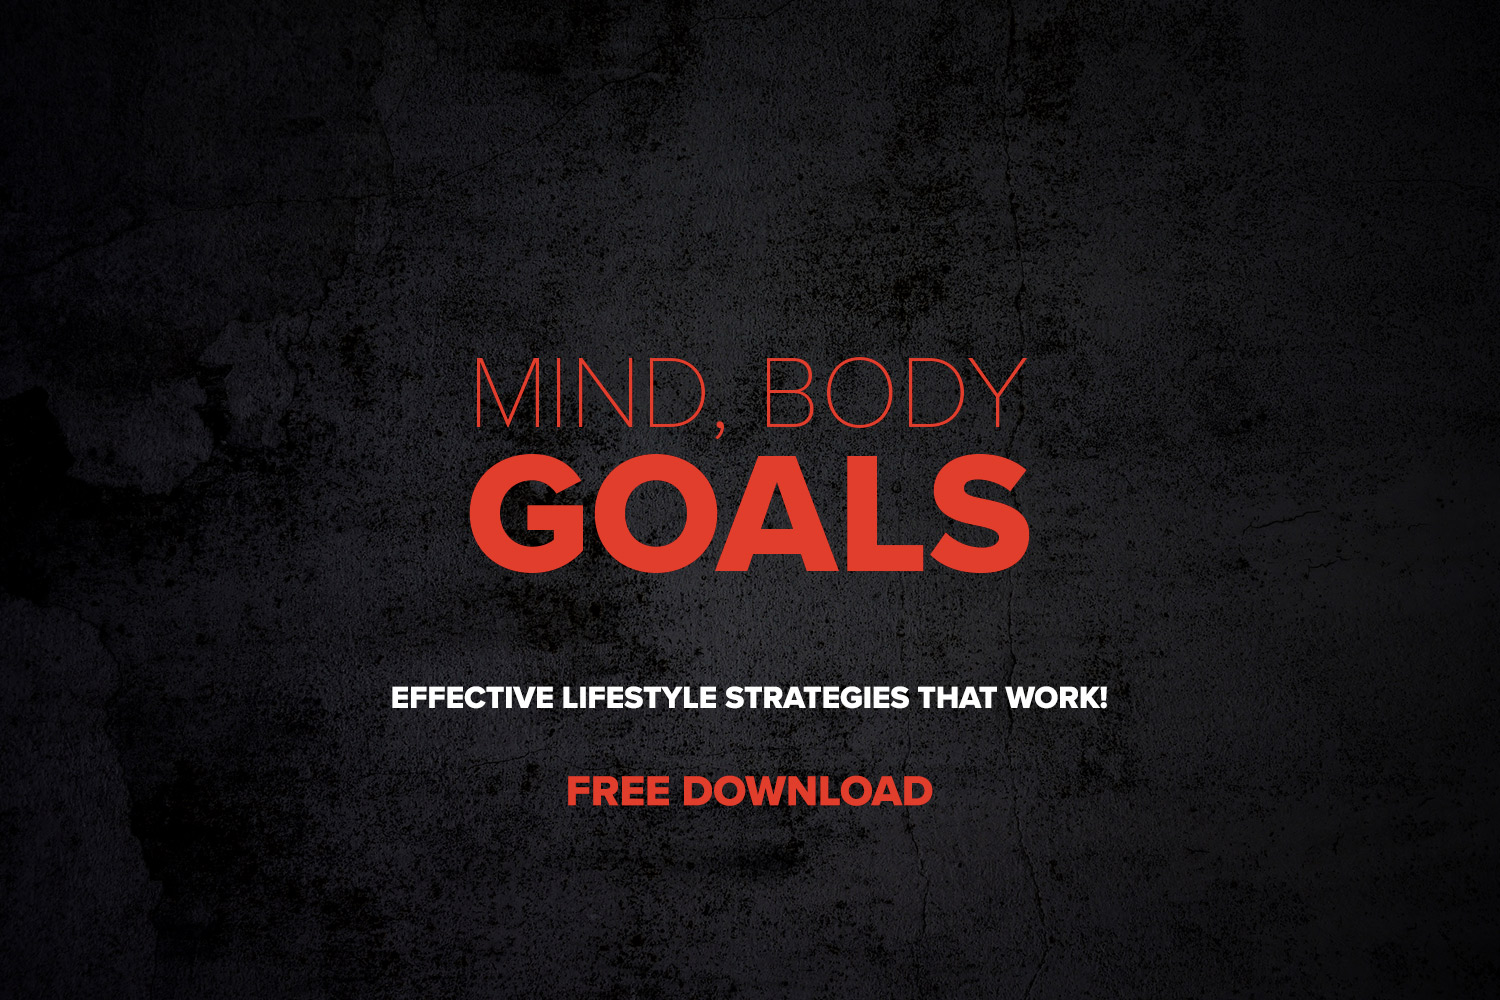 Mind-body-goals-DOWNLOAD.jpg